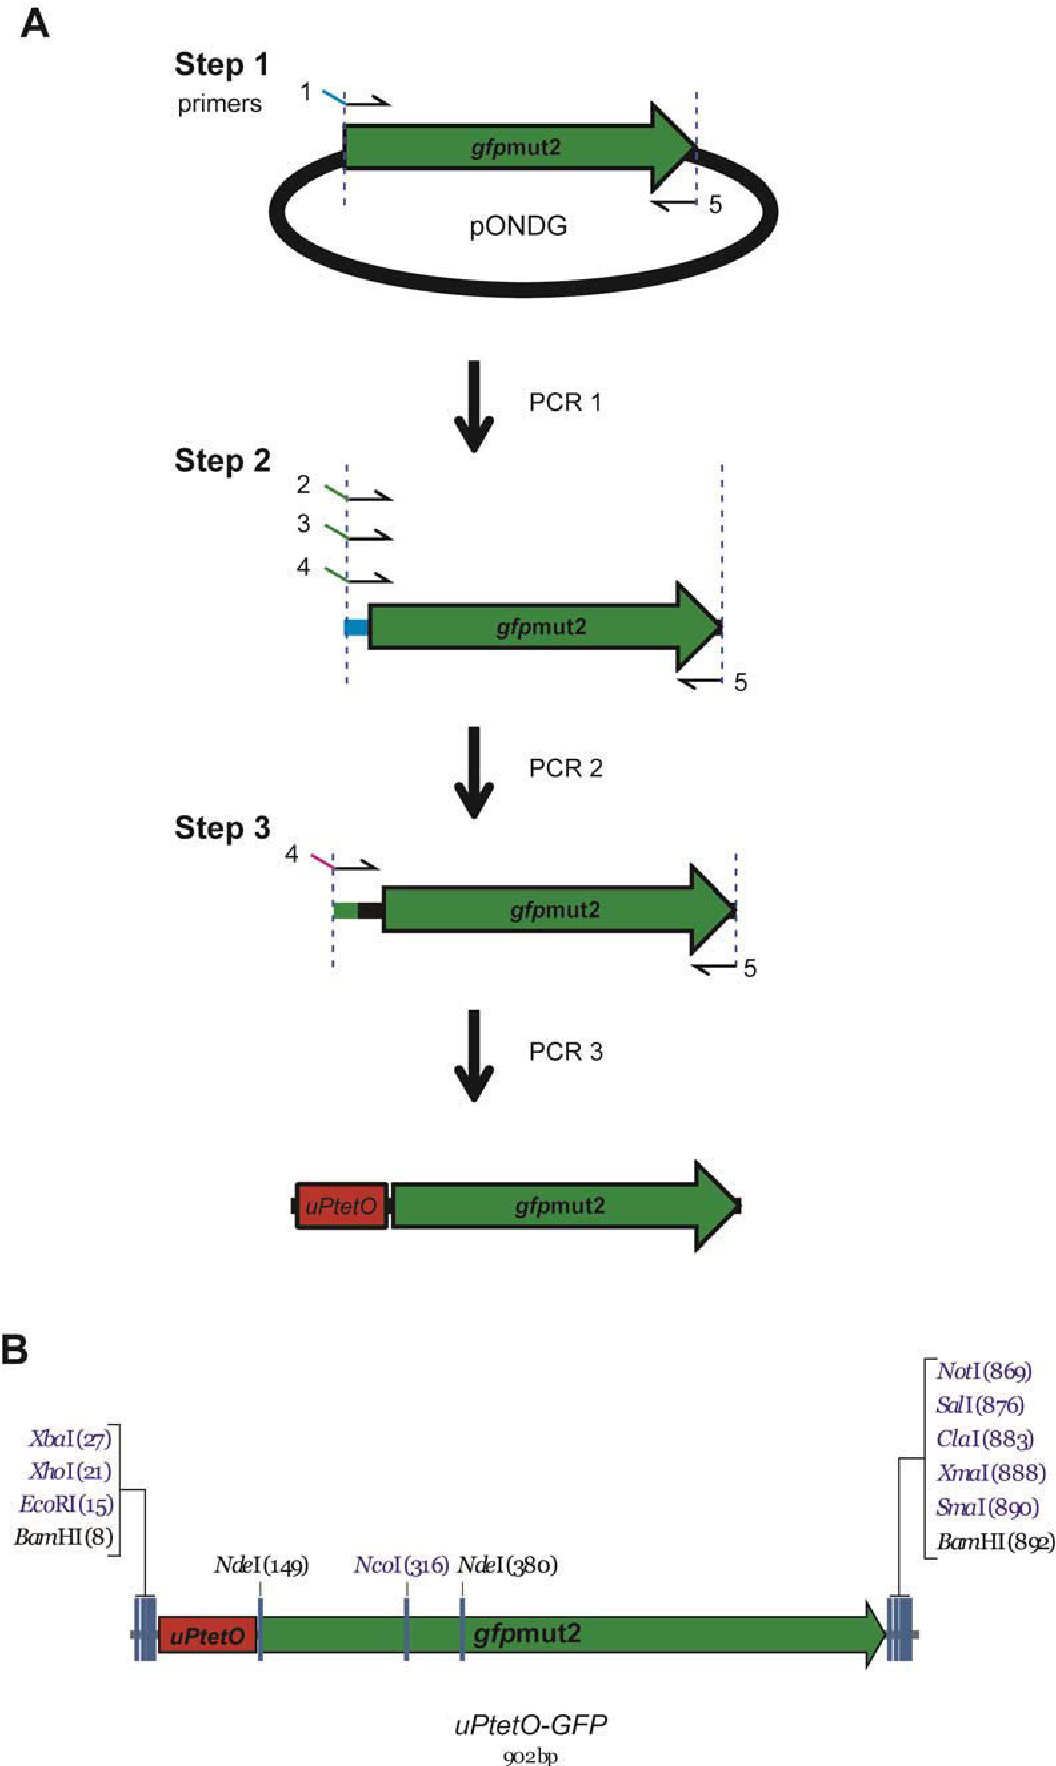 Figure 3-14 Construction of tet-responsive promoter-GFP fusion constructs, uPtetO-GFP